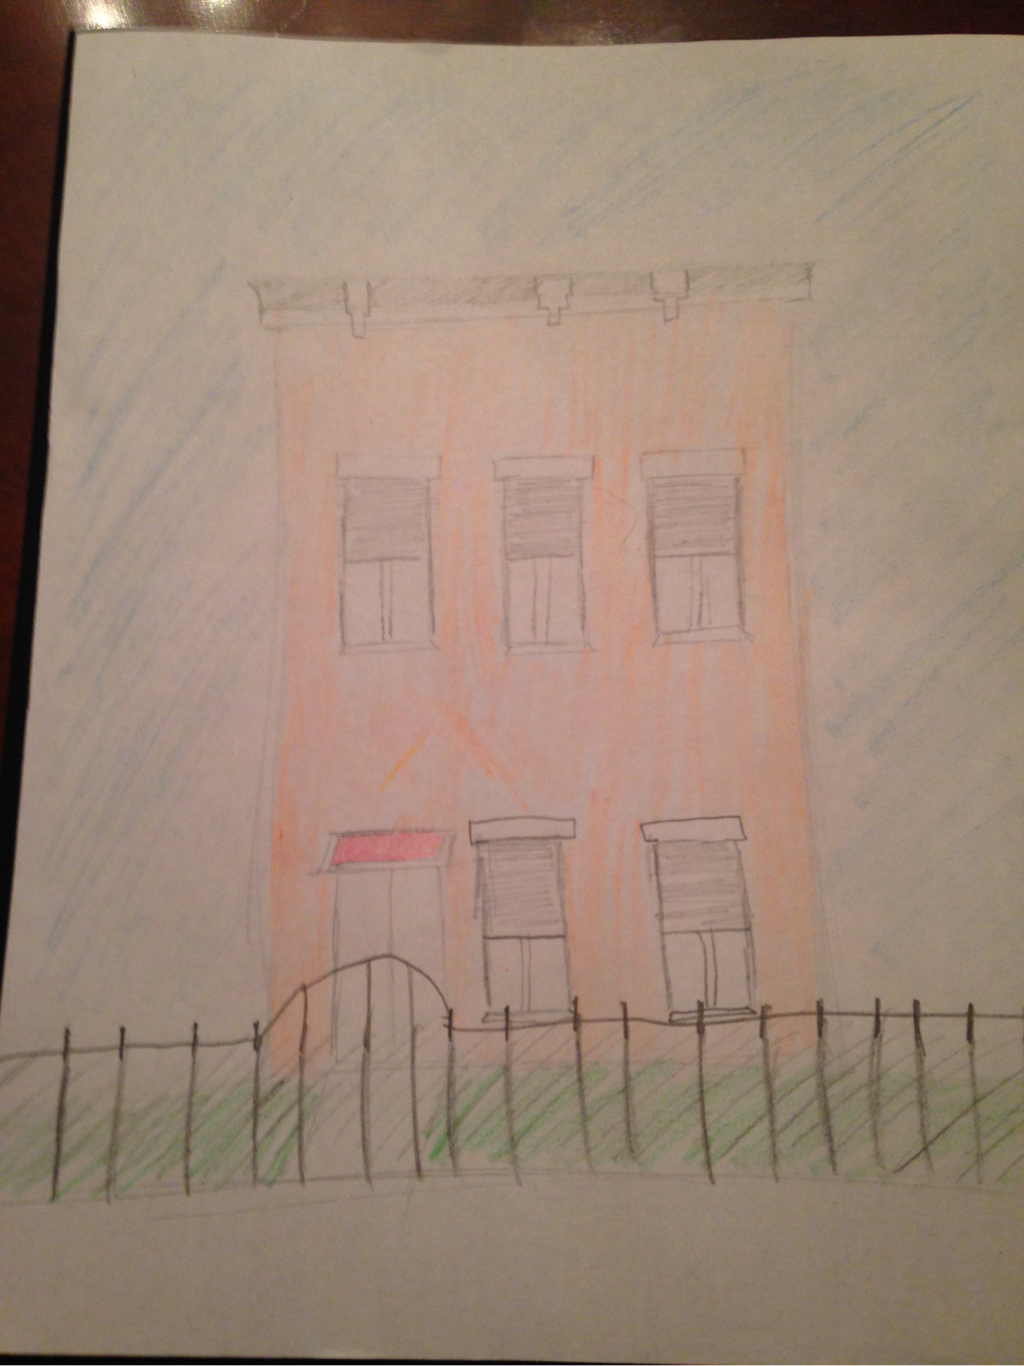 blog i created a drawing of esperanza and her families house on mango street itself esperanza consistent judgements of her house inspired me to create what